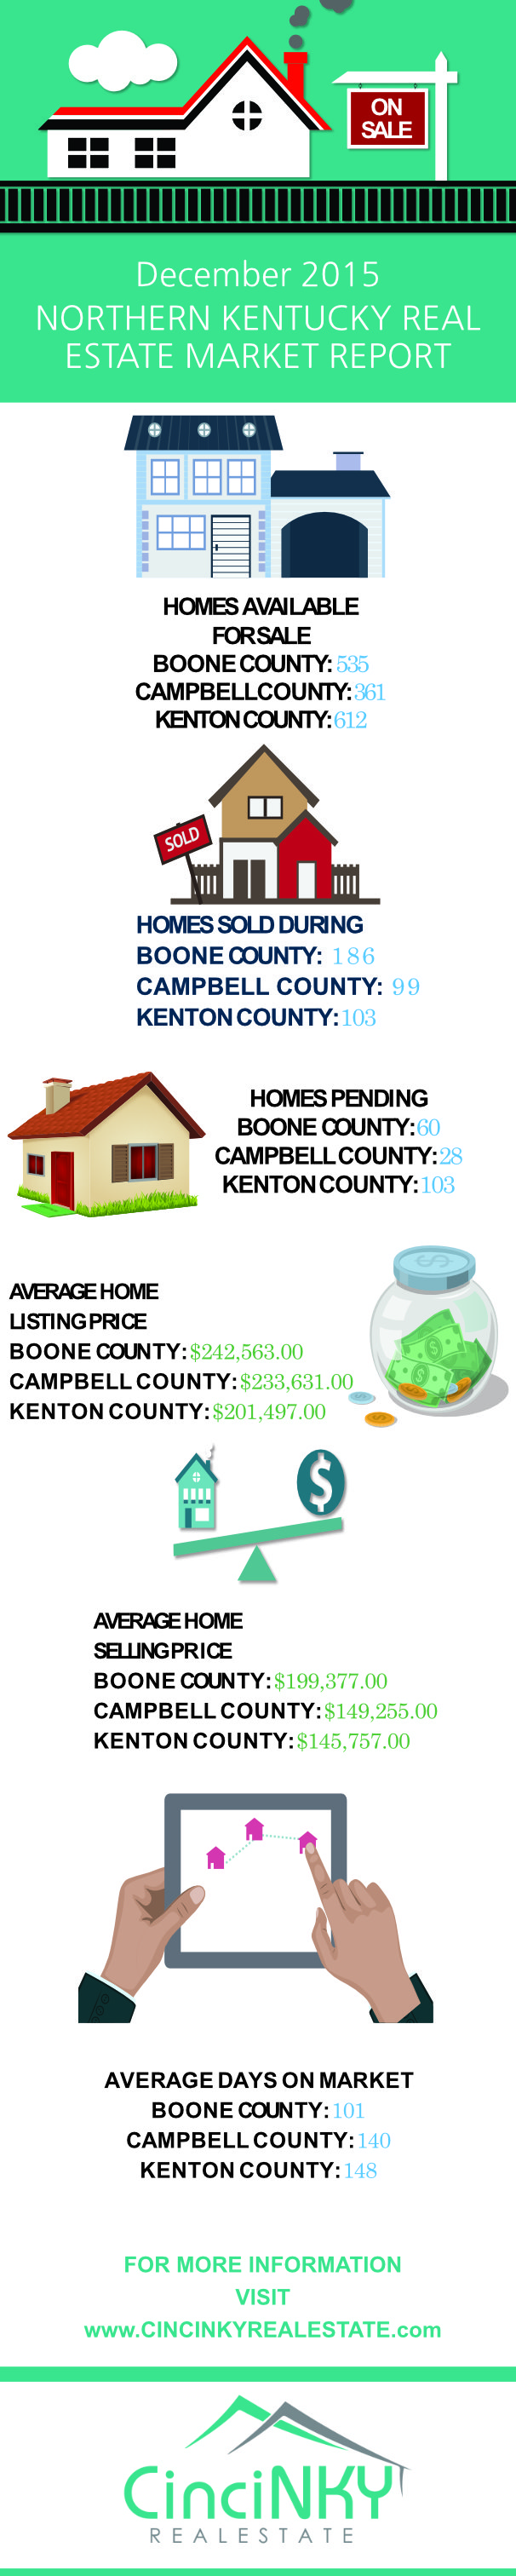 December 2015 Northern Kentucky Real Estate Market Report infographic